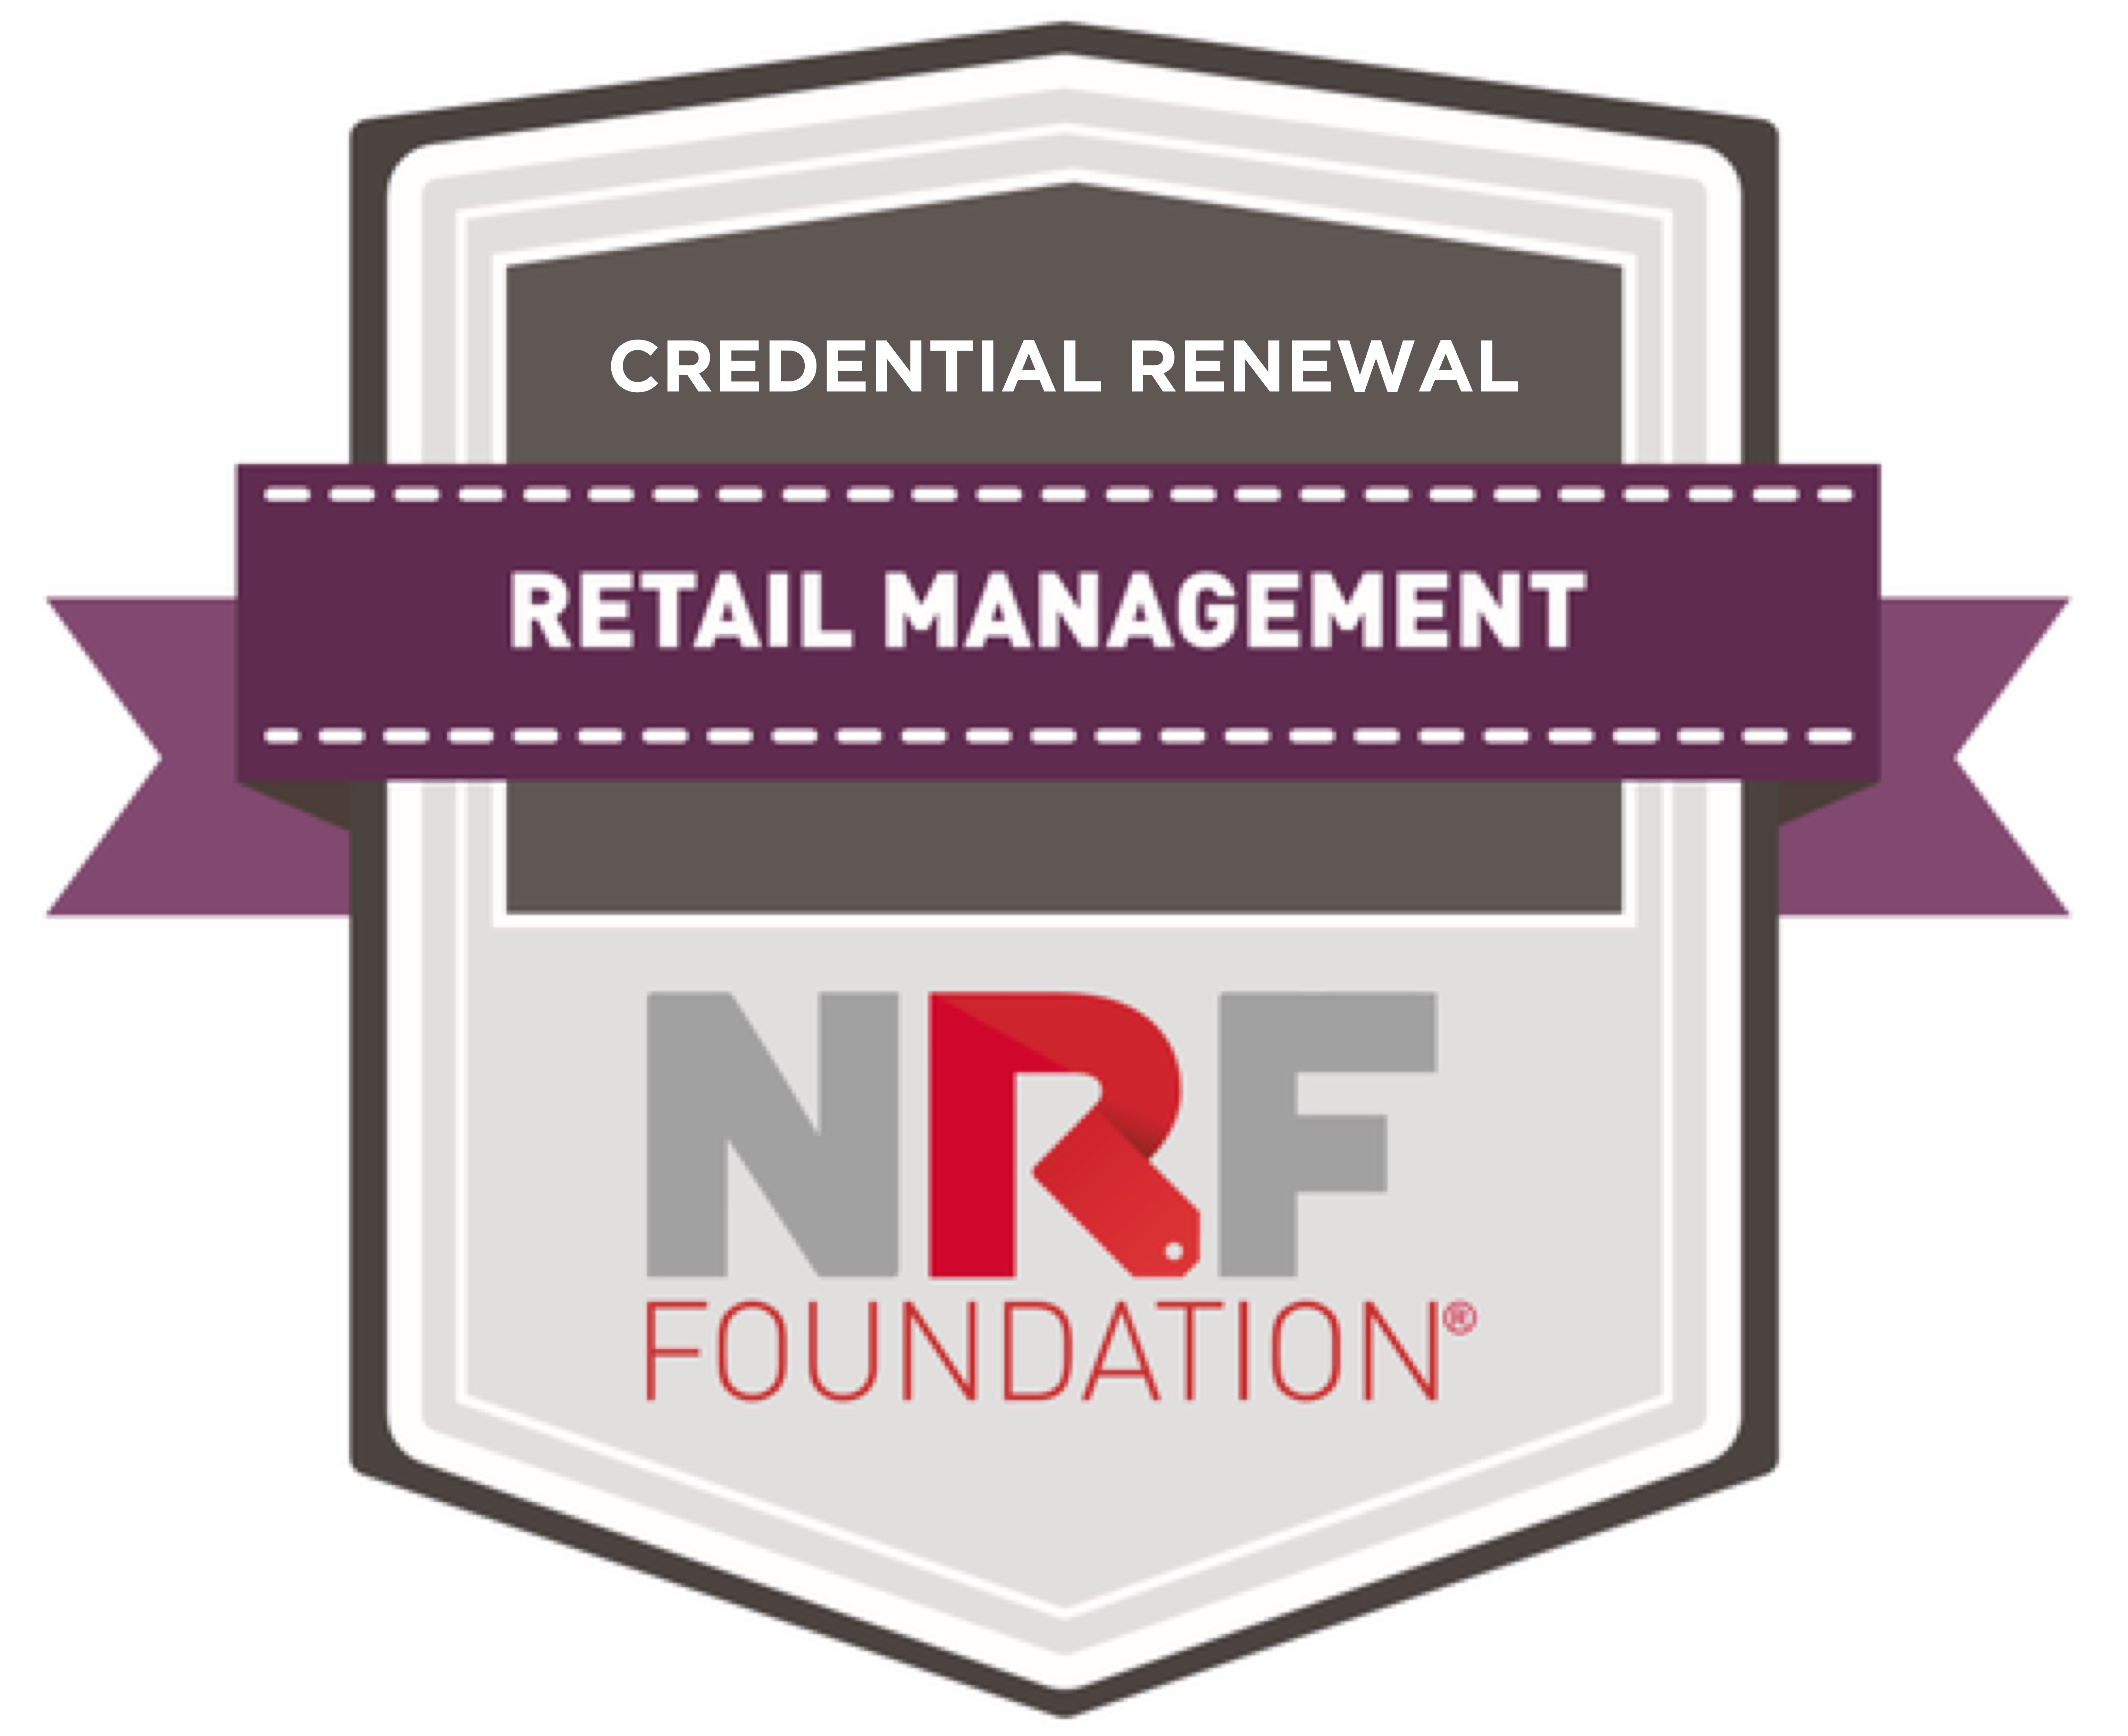 retail-management-credential-renewal.jpg